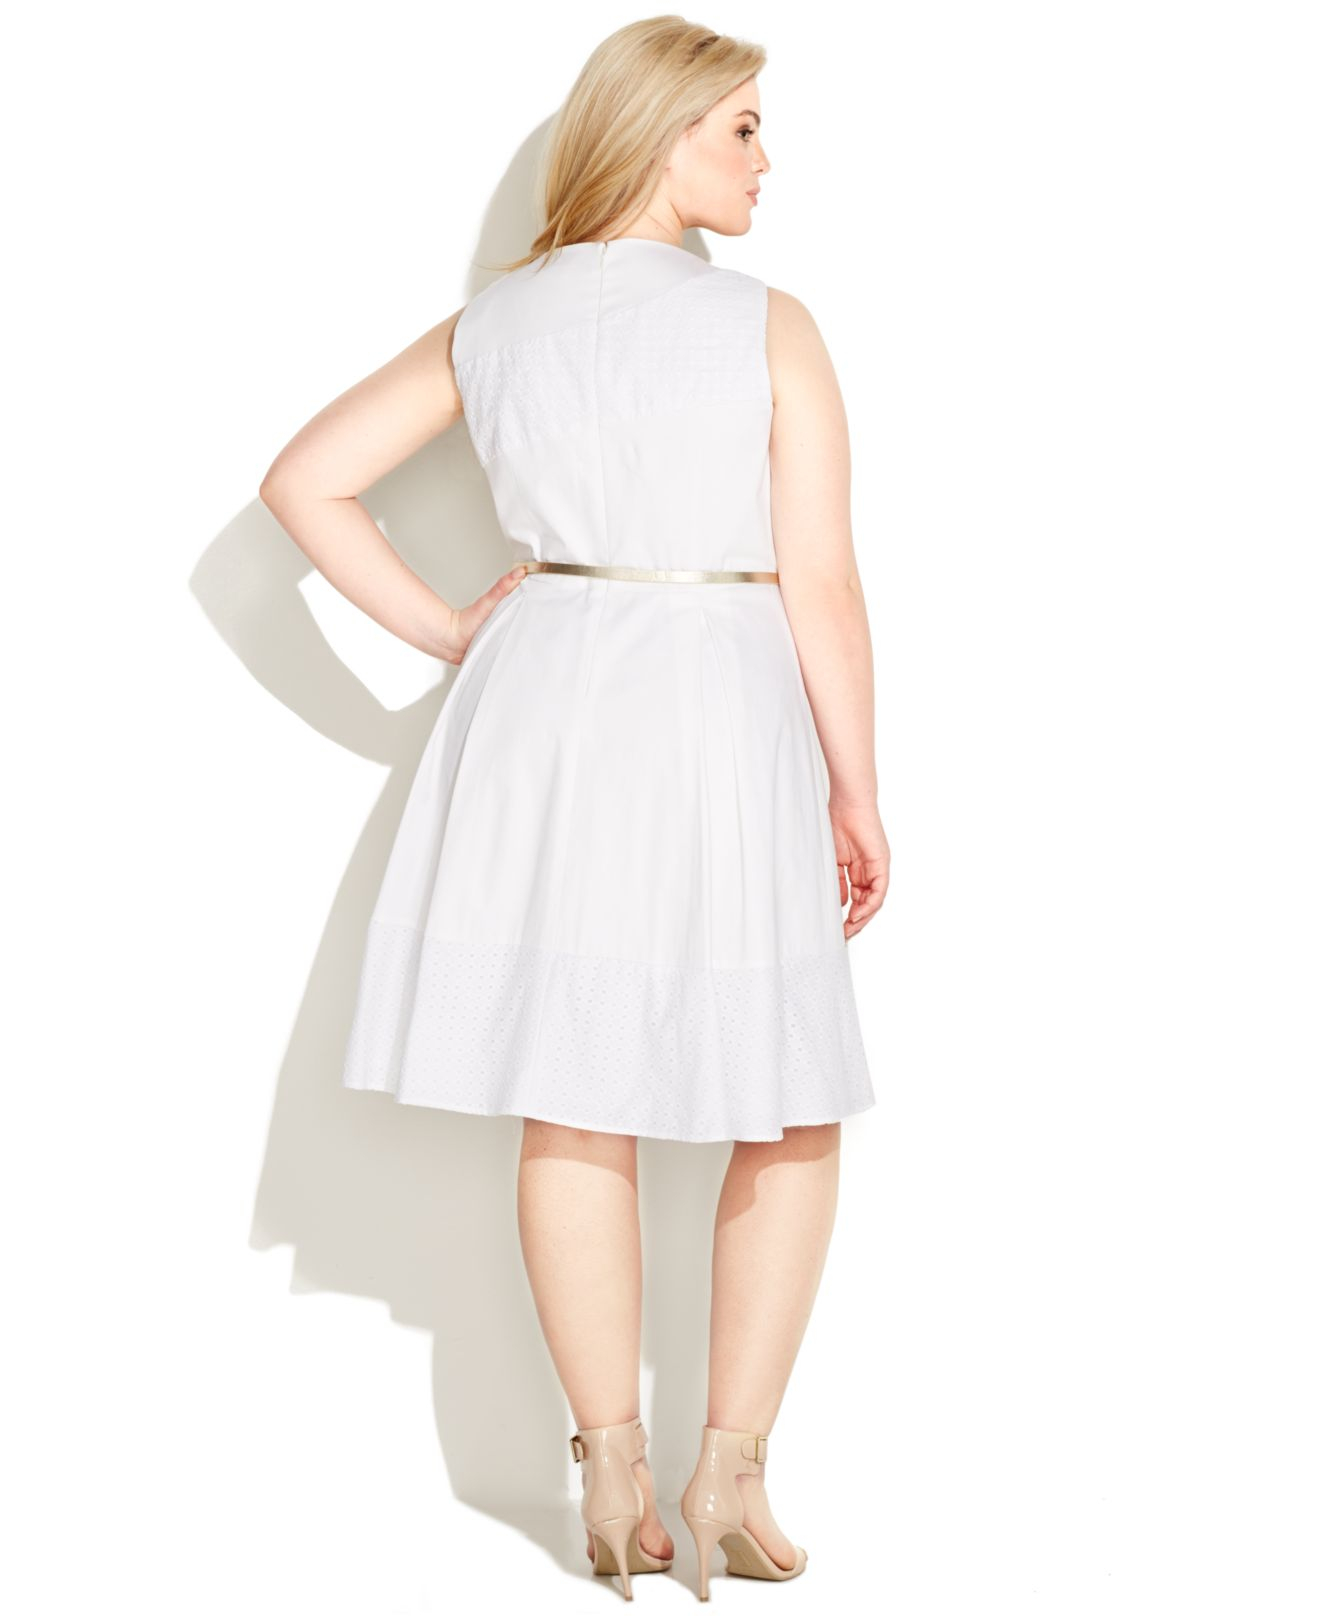 30145e46a2 Calvin Klein Plus Size Eyelet Belted A-line Dress in White - Lyst